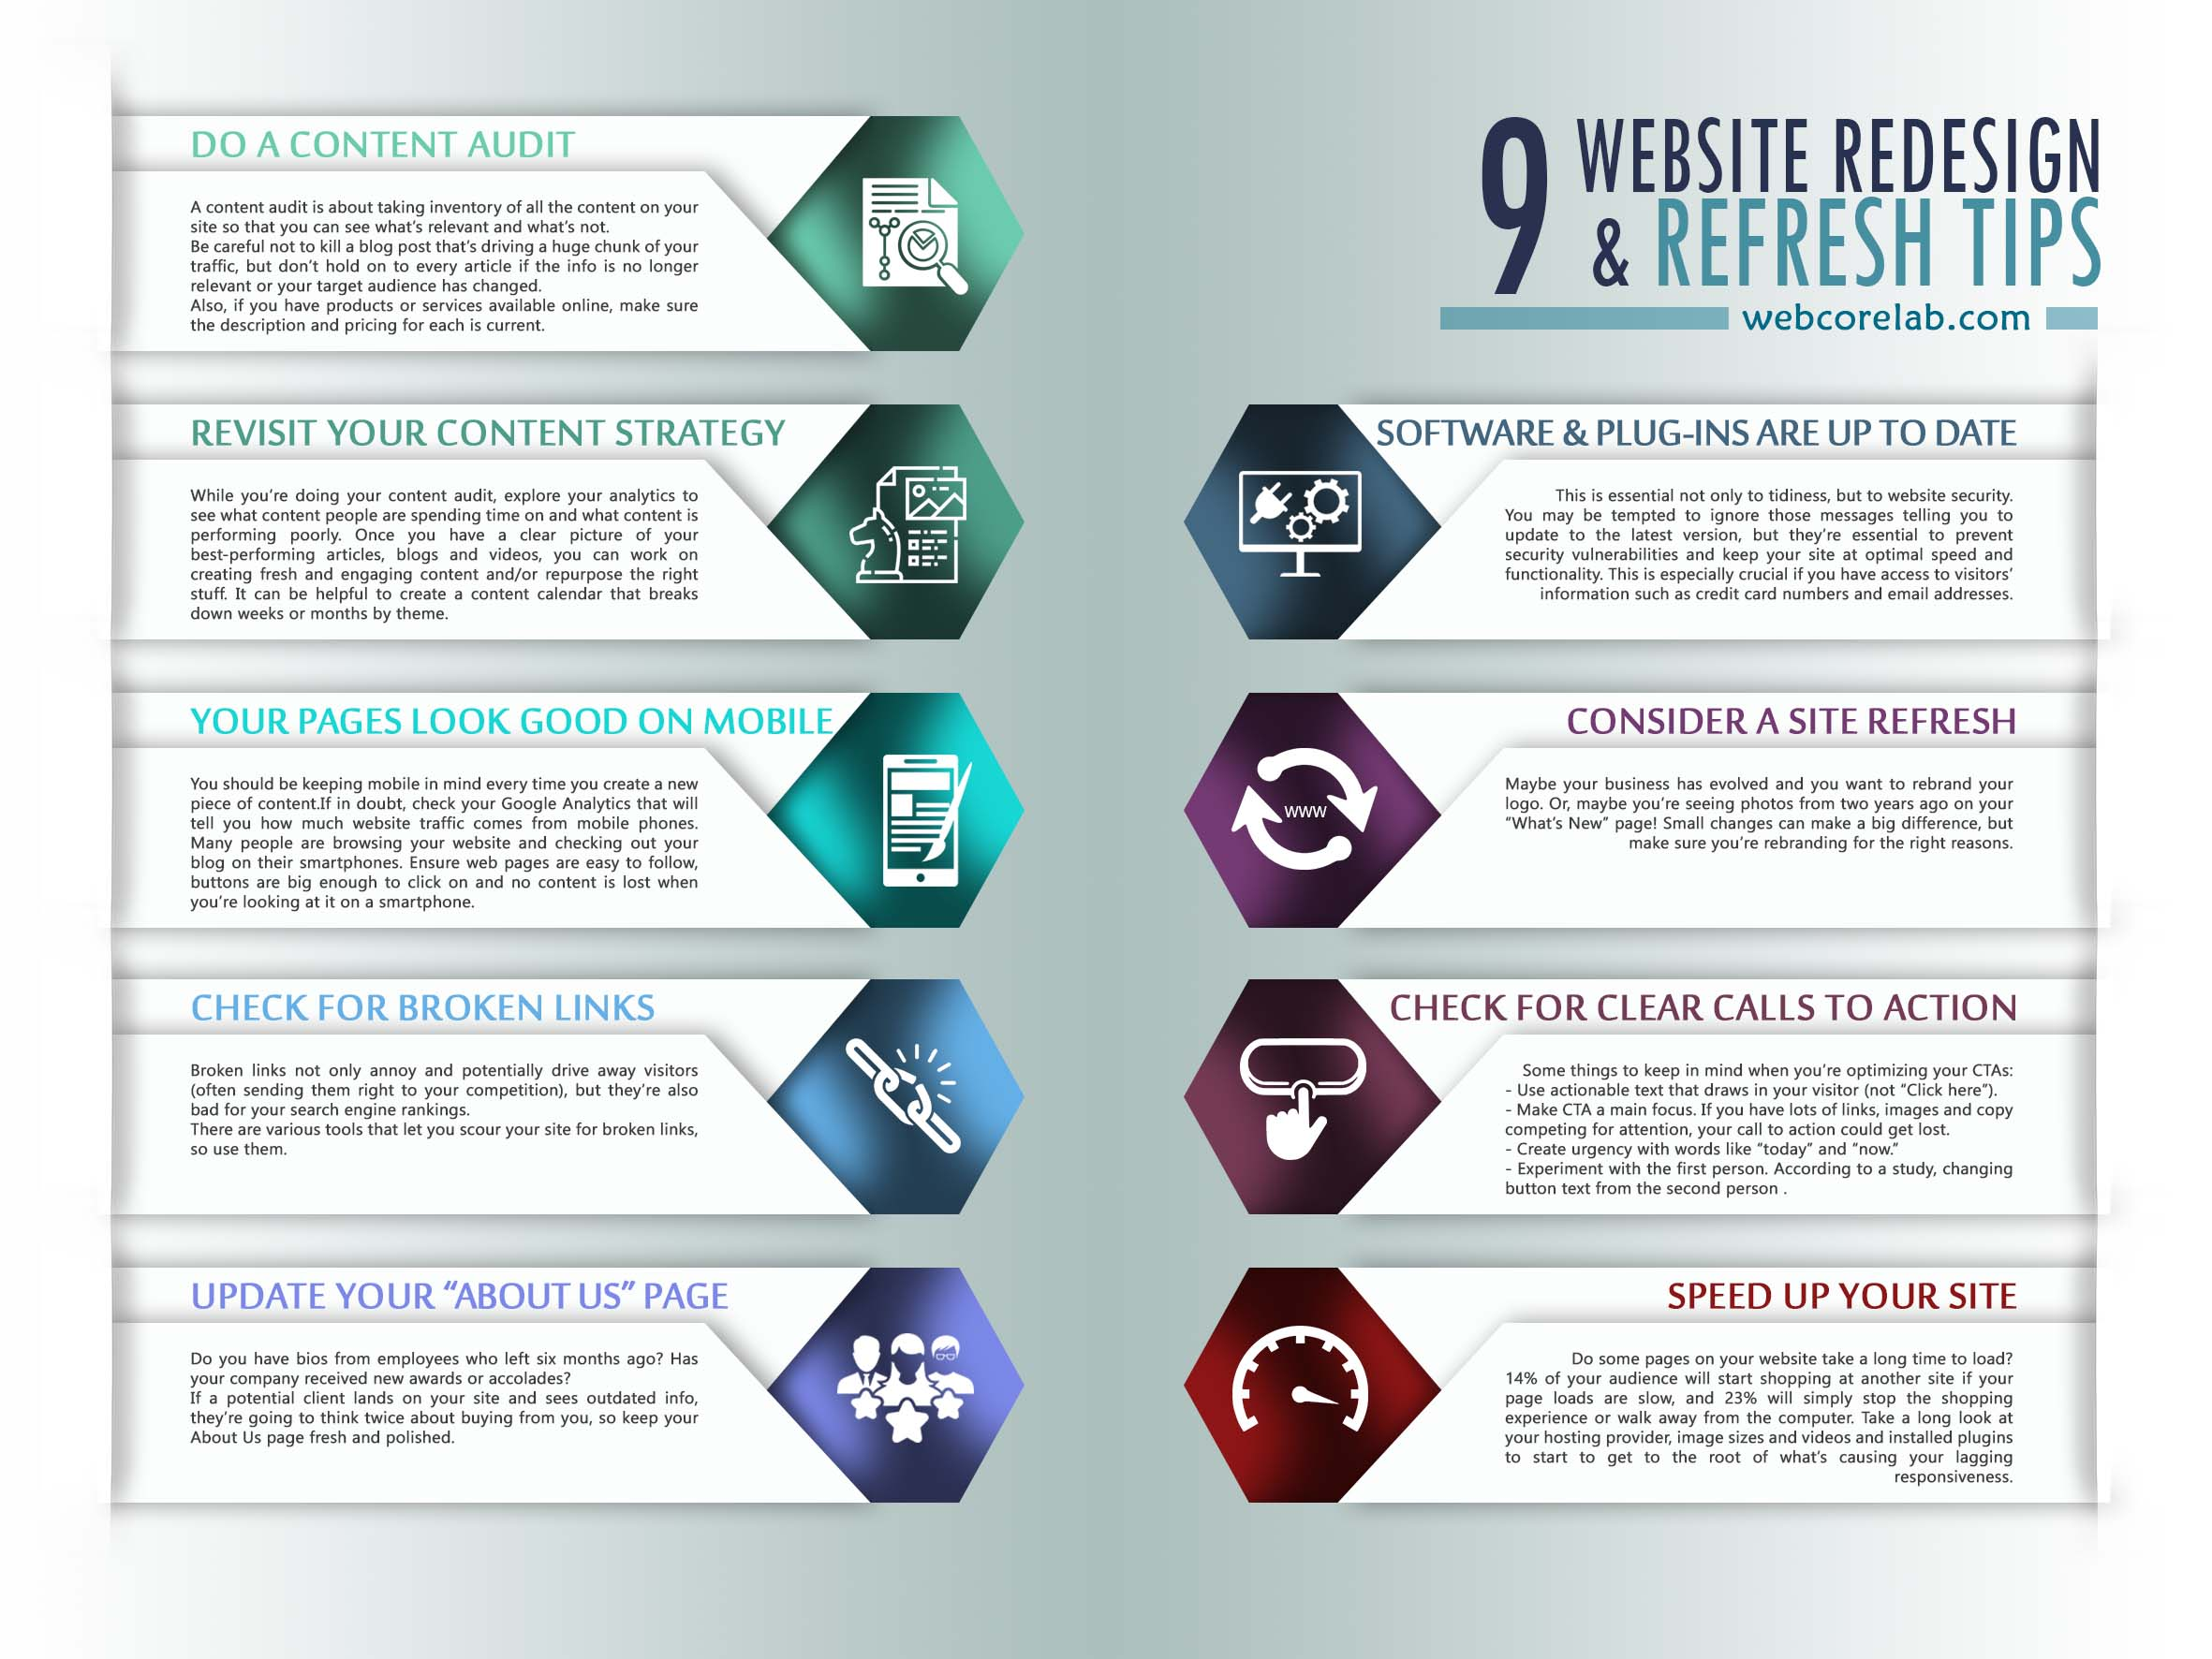 The best website redesign with 9 tips from Webcorelab